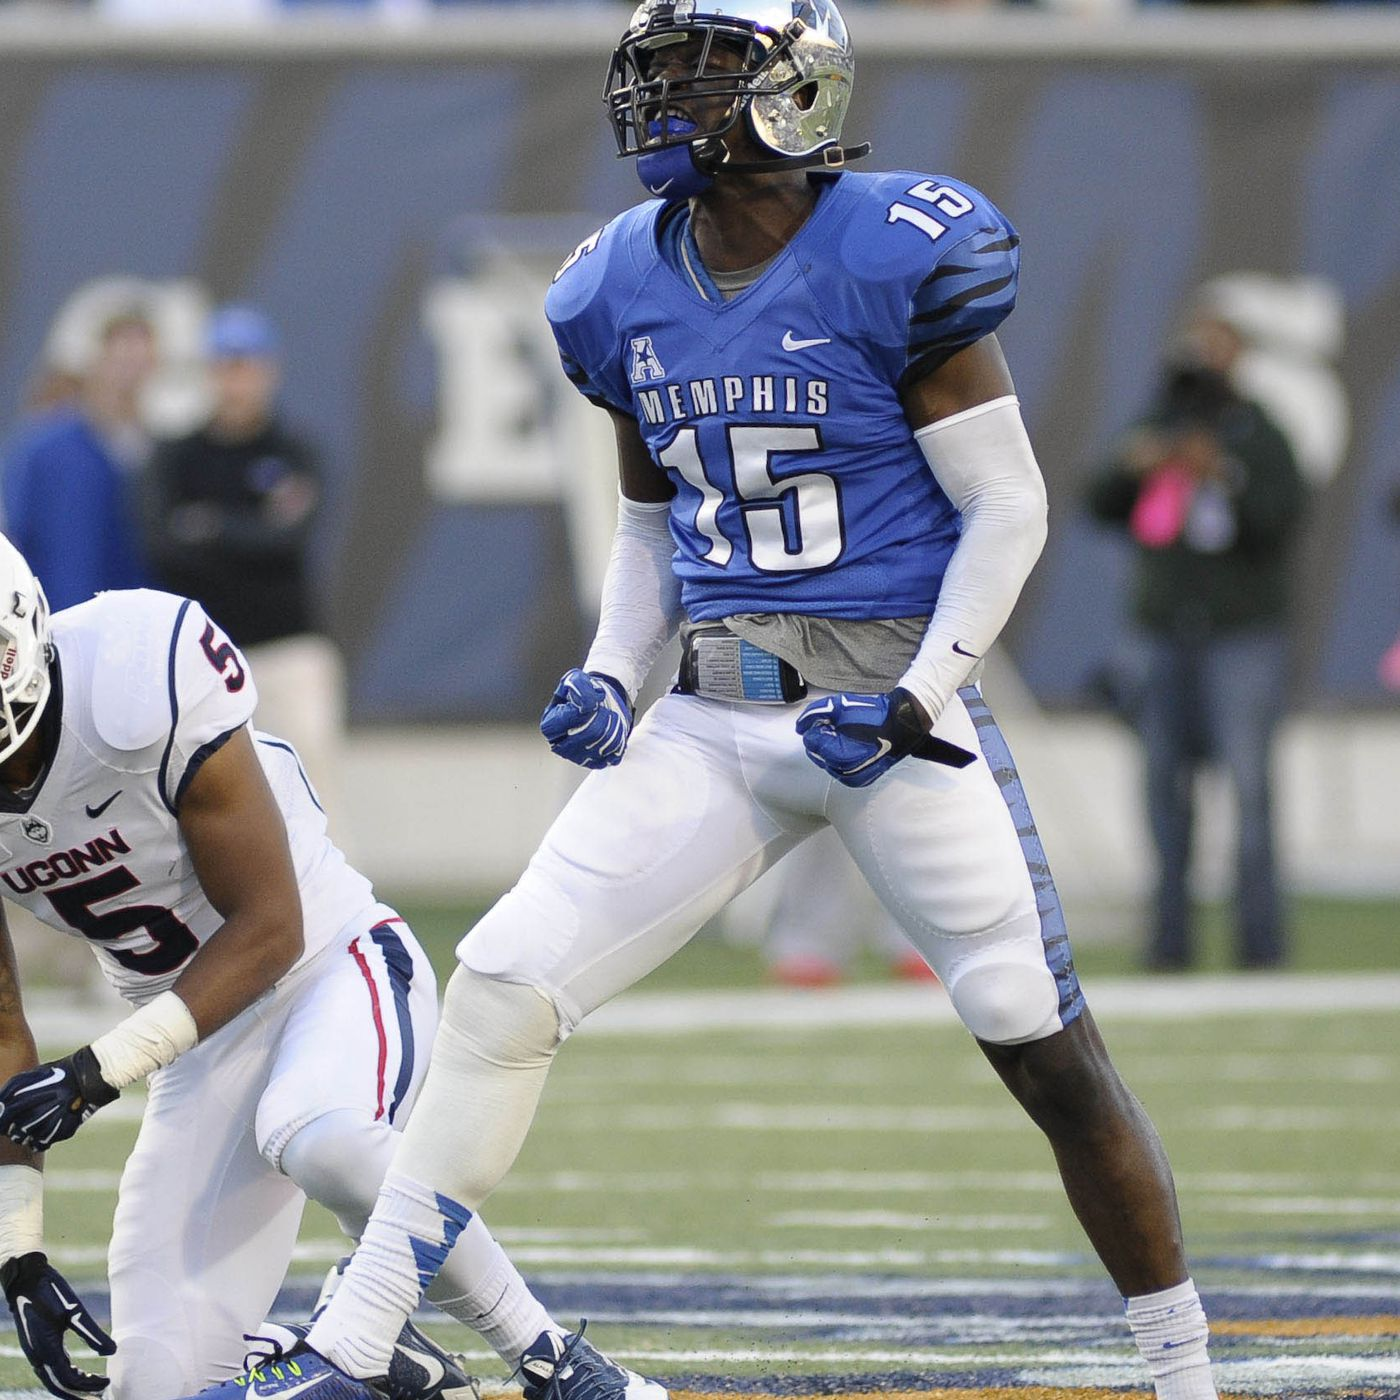 Byu memphis betting preview presidential betting